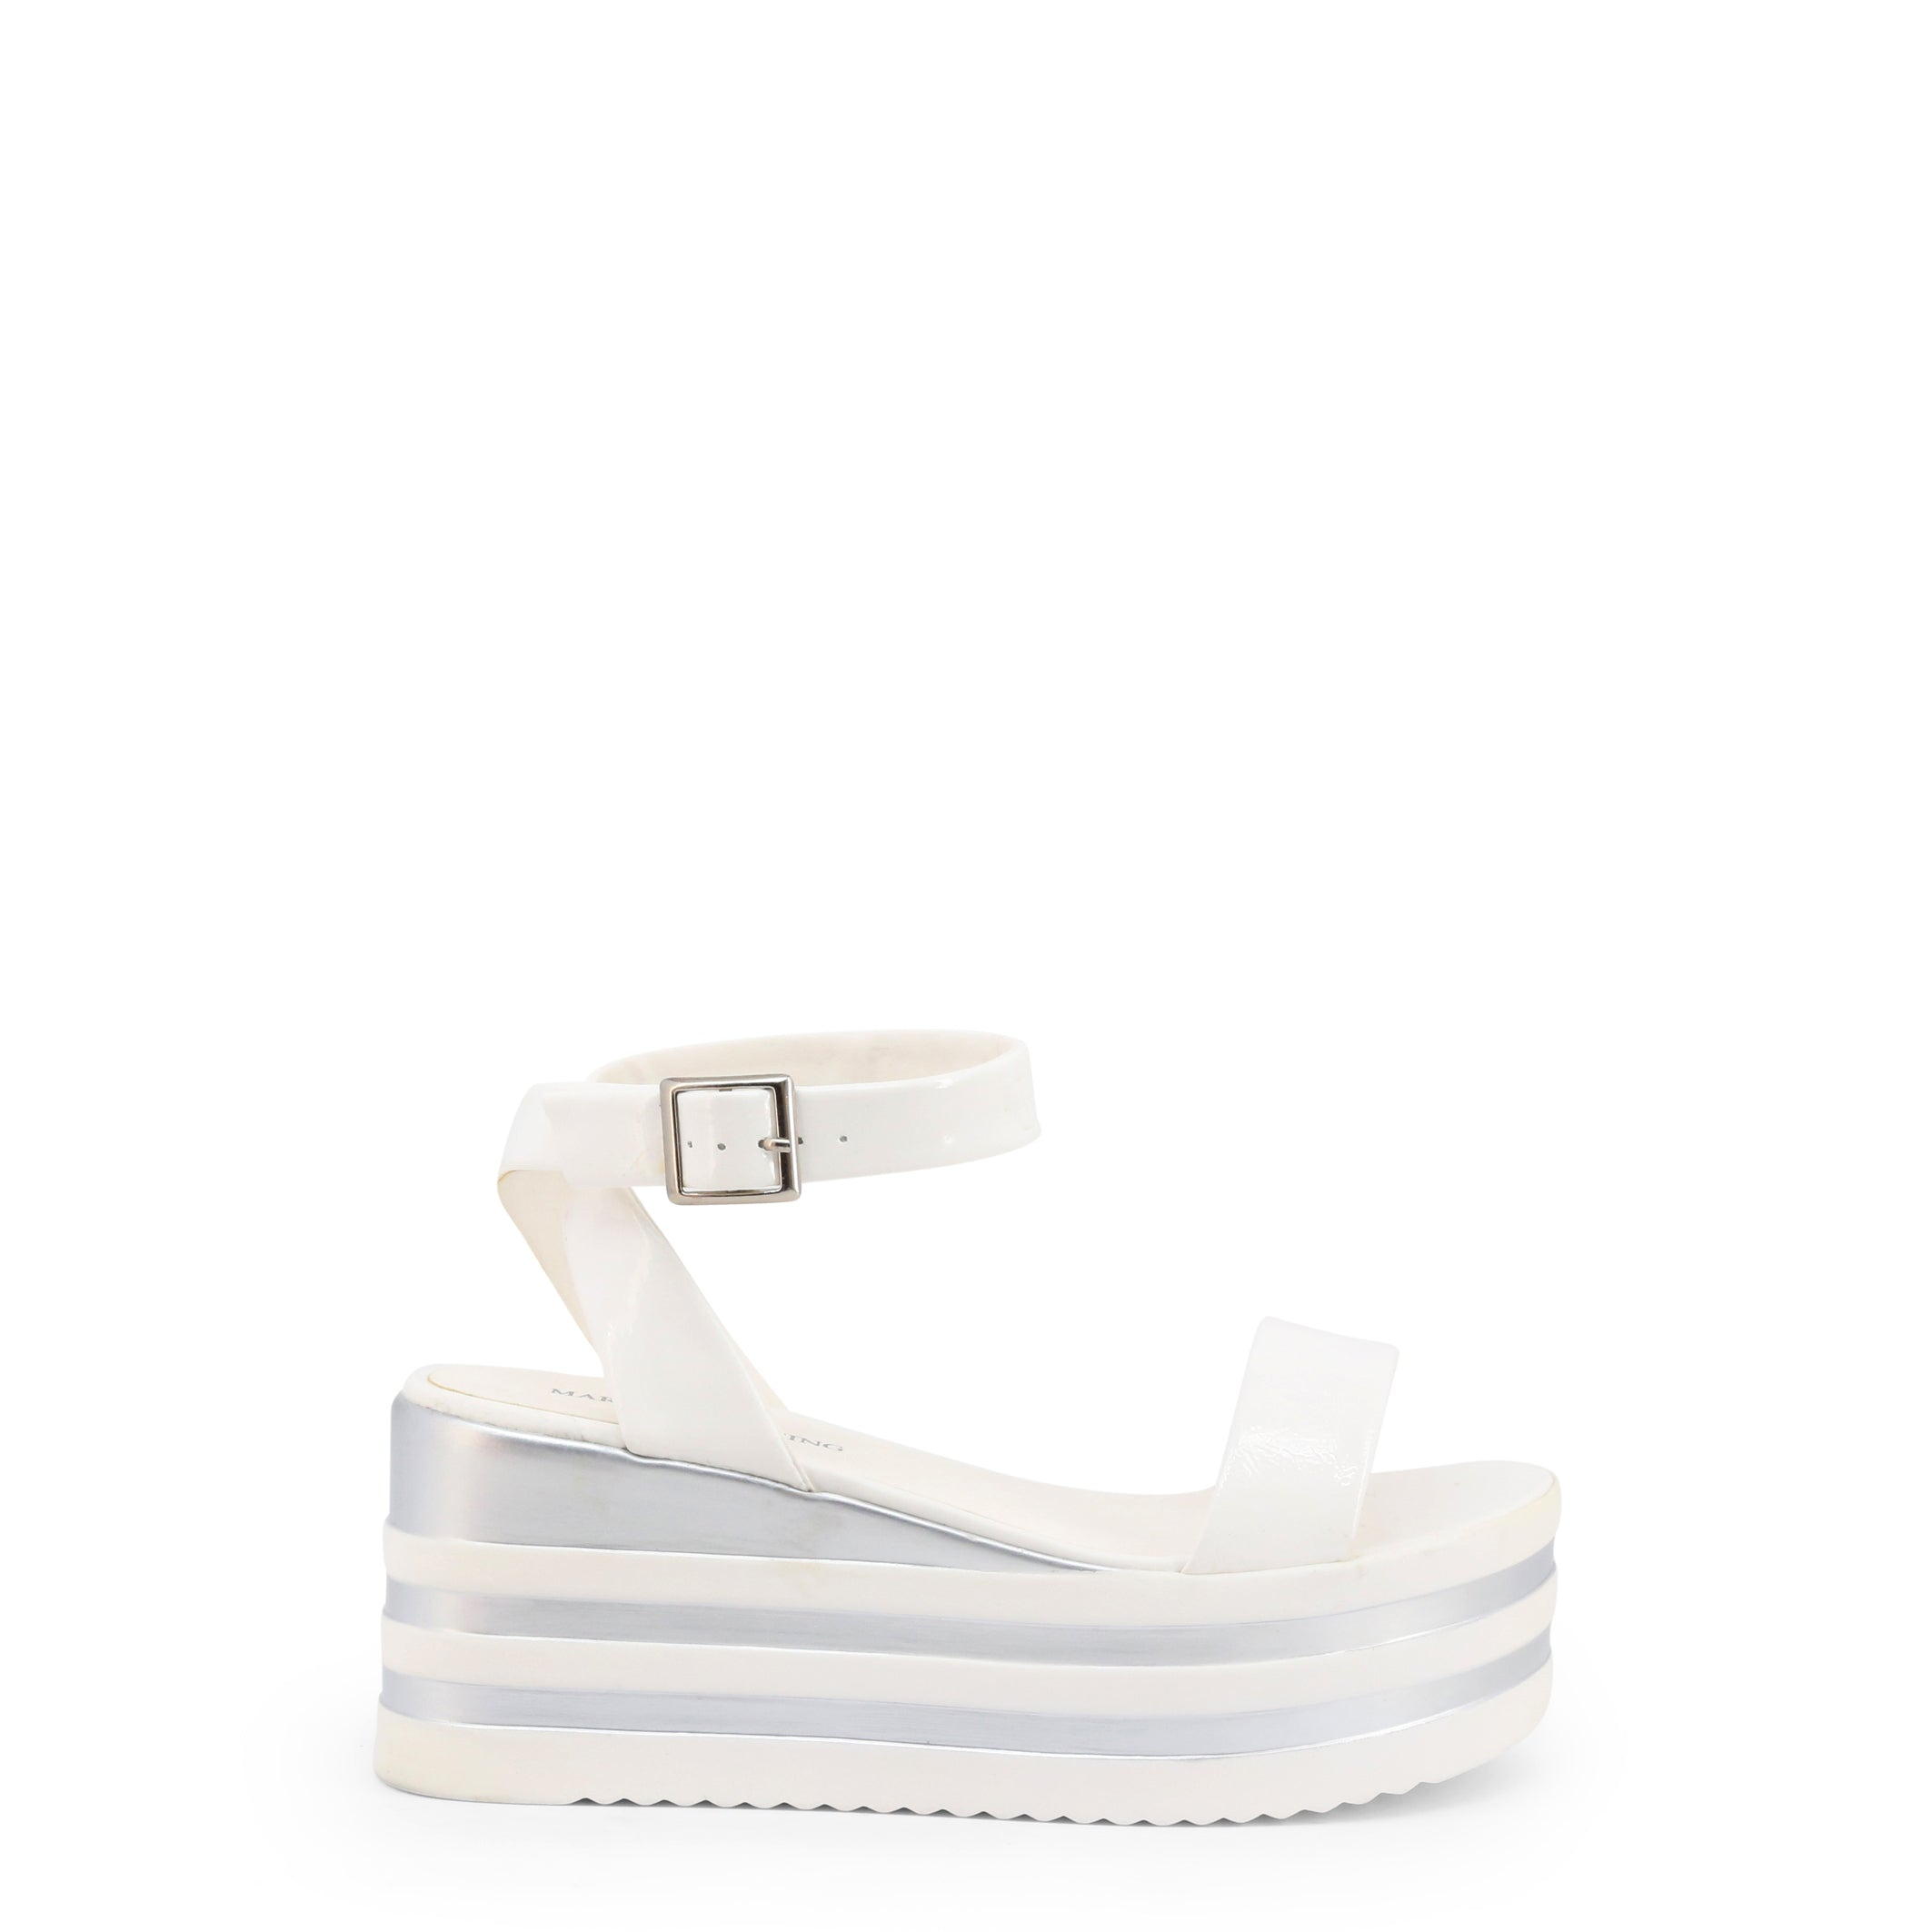 Marina Yachting Manille Women's Wedges